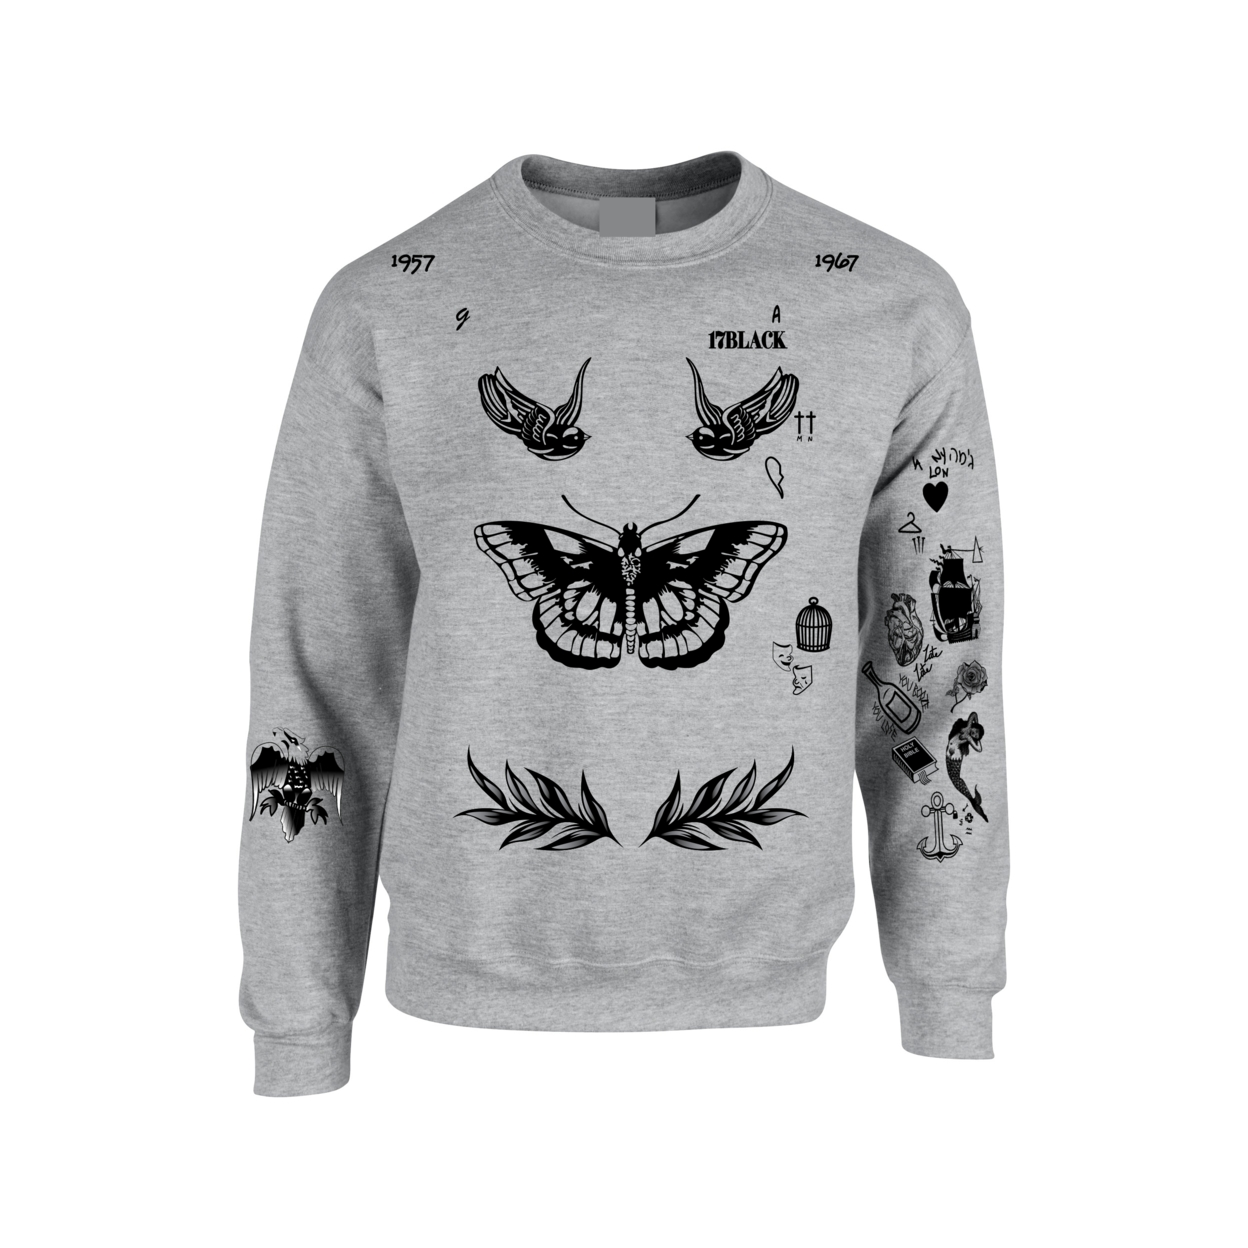 0acea67758a2 Harry Styles Tattoo Crewneck Sweatshirt One Direction on Aliexpress.com